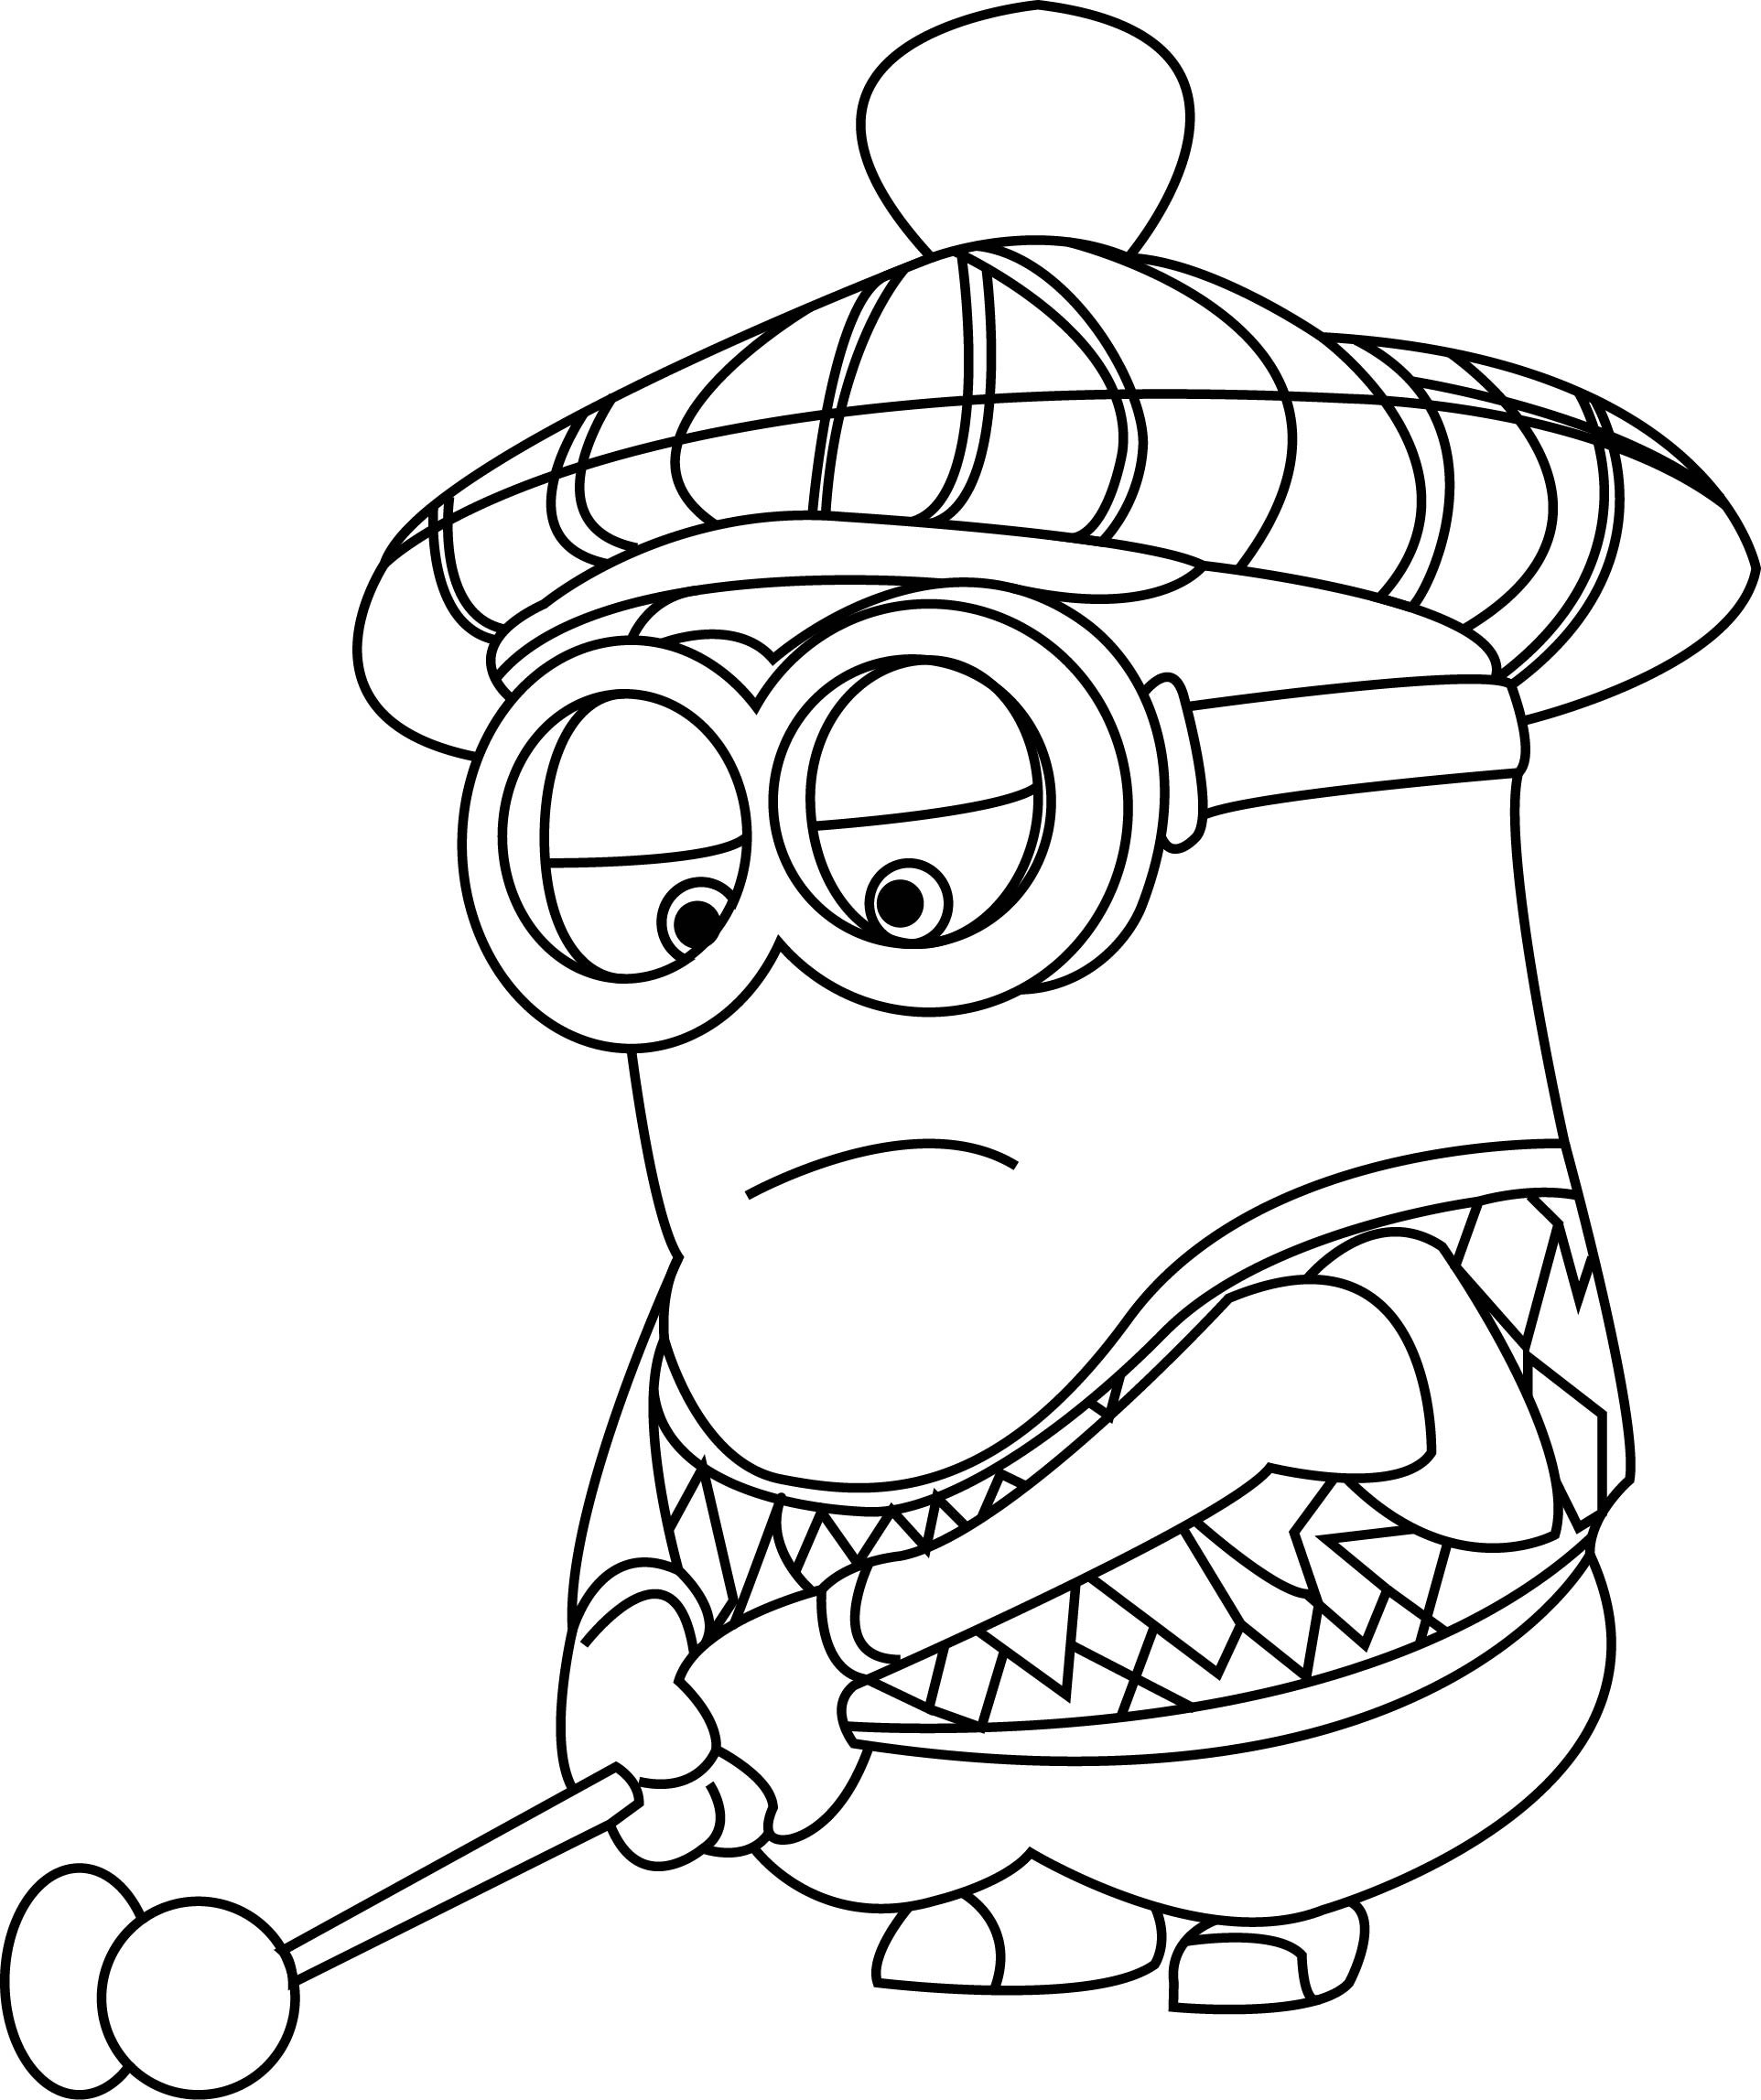 despicable me golfer minions coloring page - Despicable Coloring Pages Dave